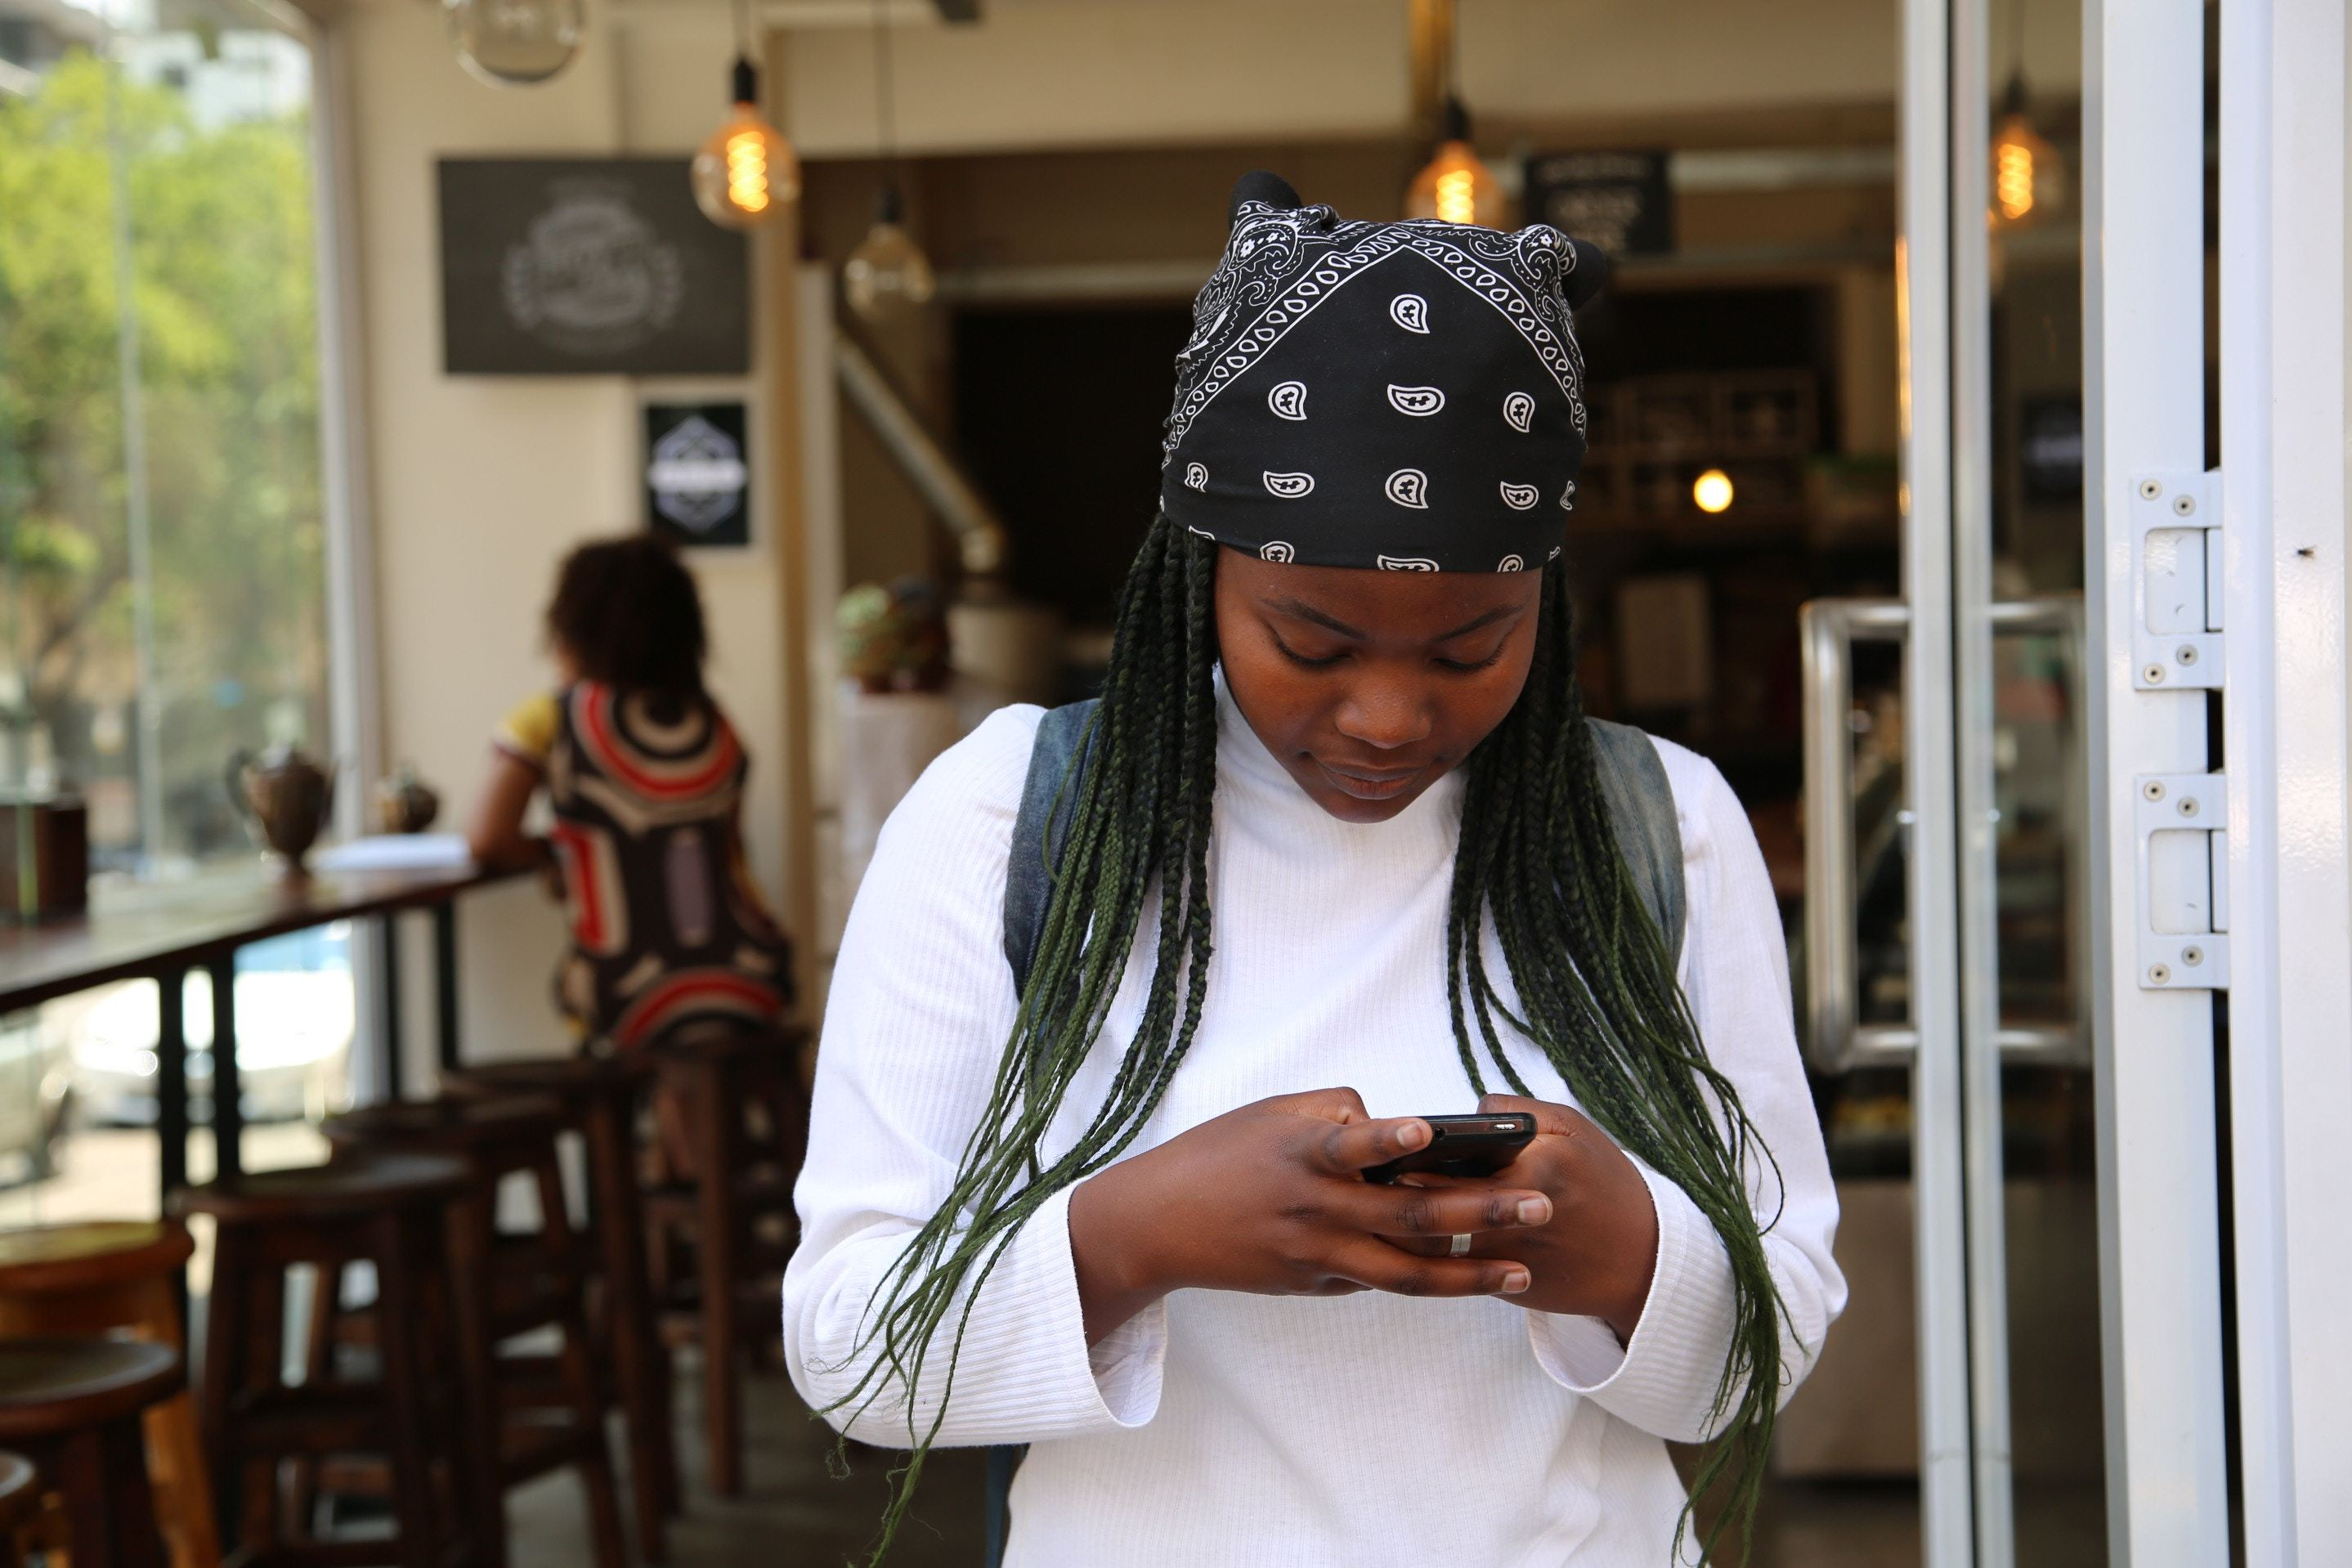 A socially conscious woman receives an action alert from an advocacy organization on her messaging app.